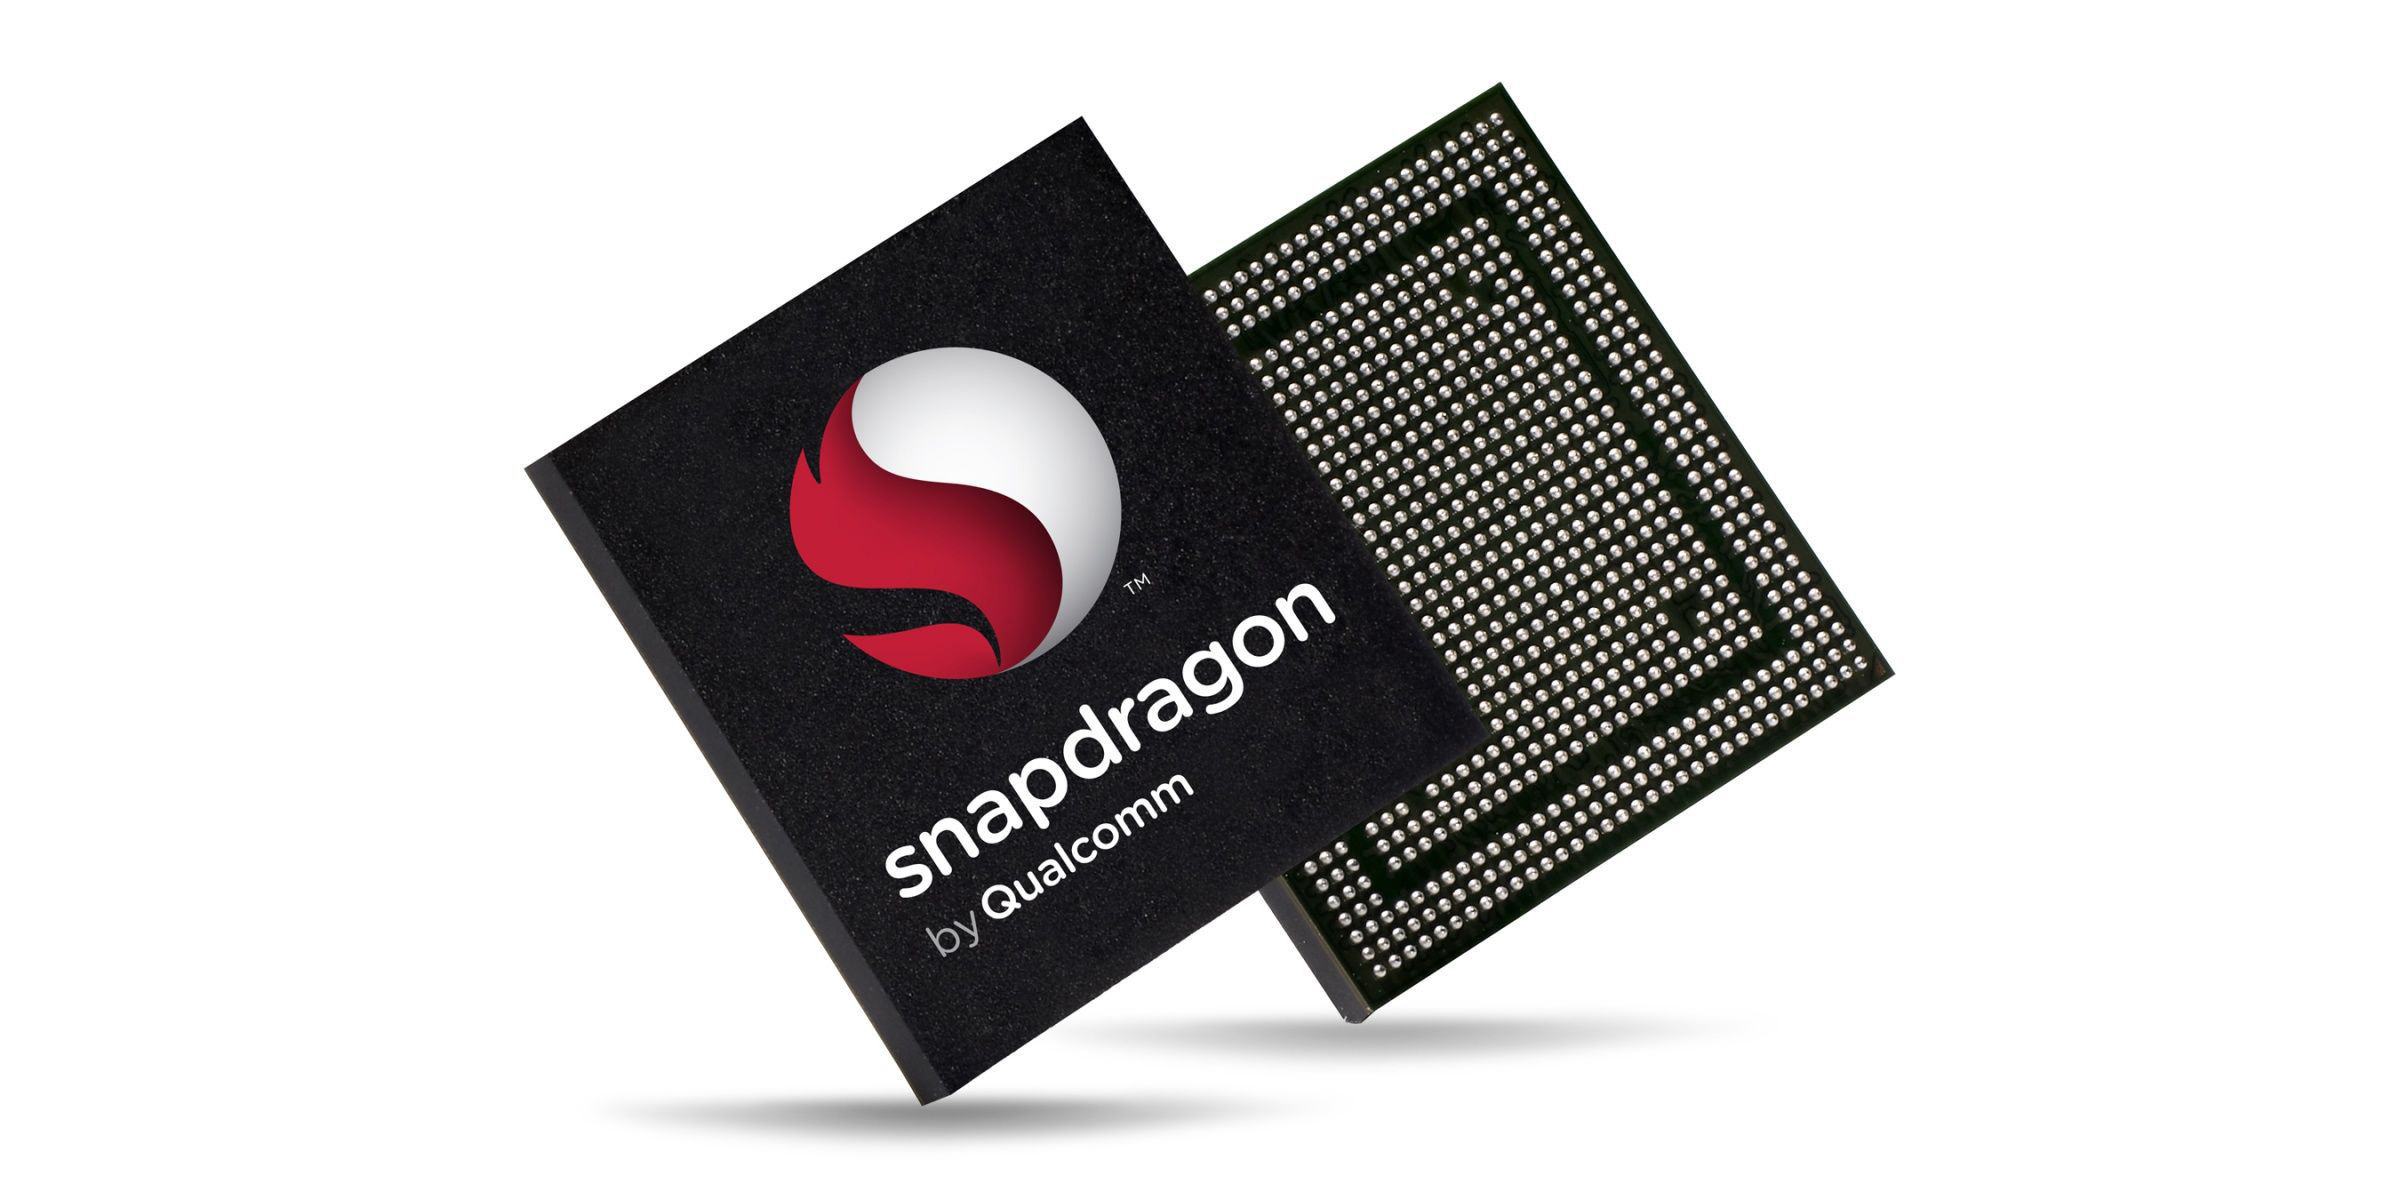 qualcomm snapdragon 675 cpu brings triple camera support better ai performance quick charge 4